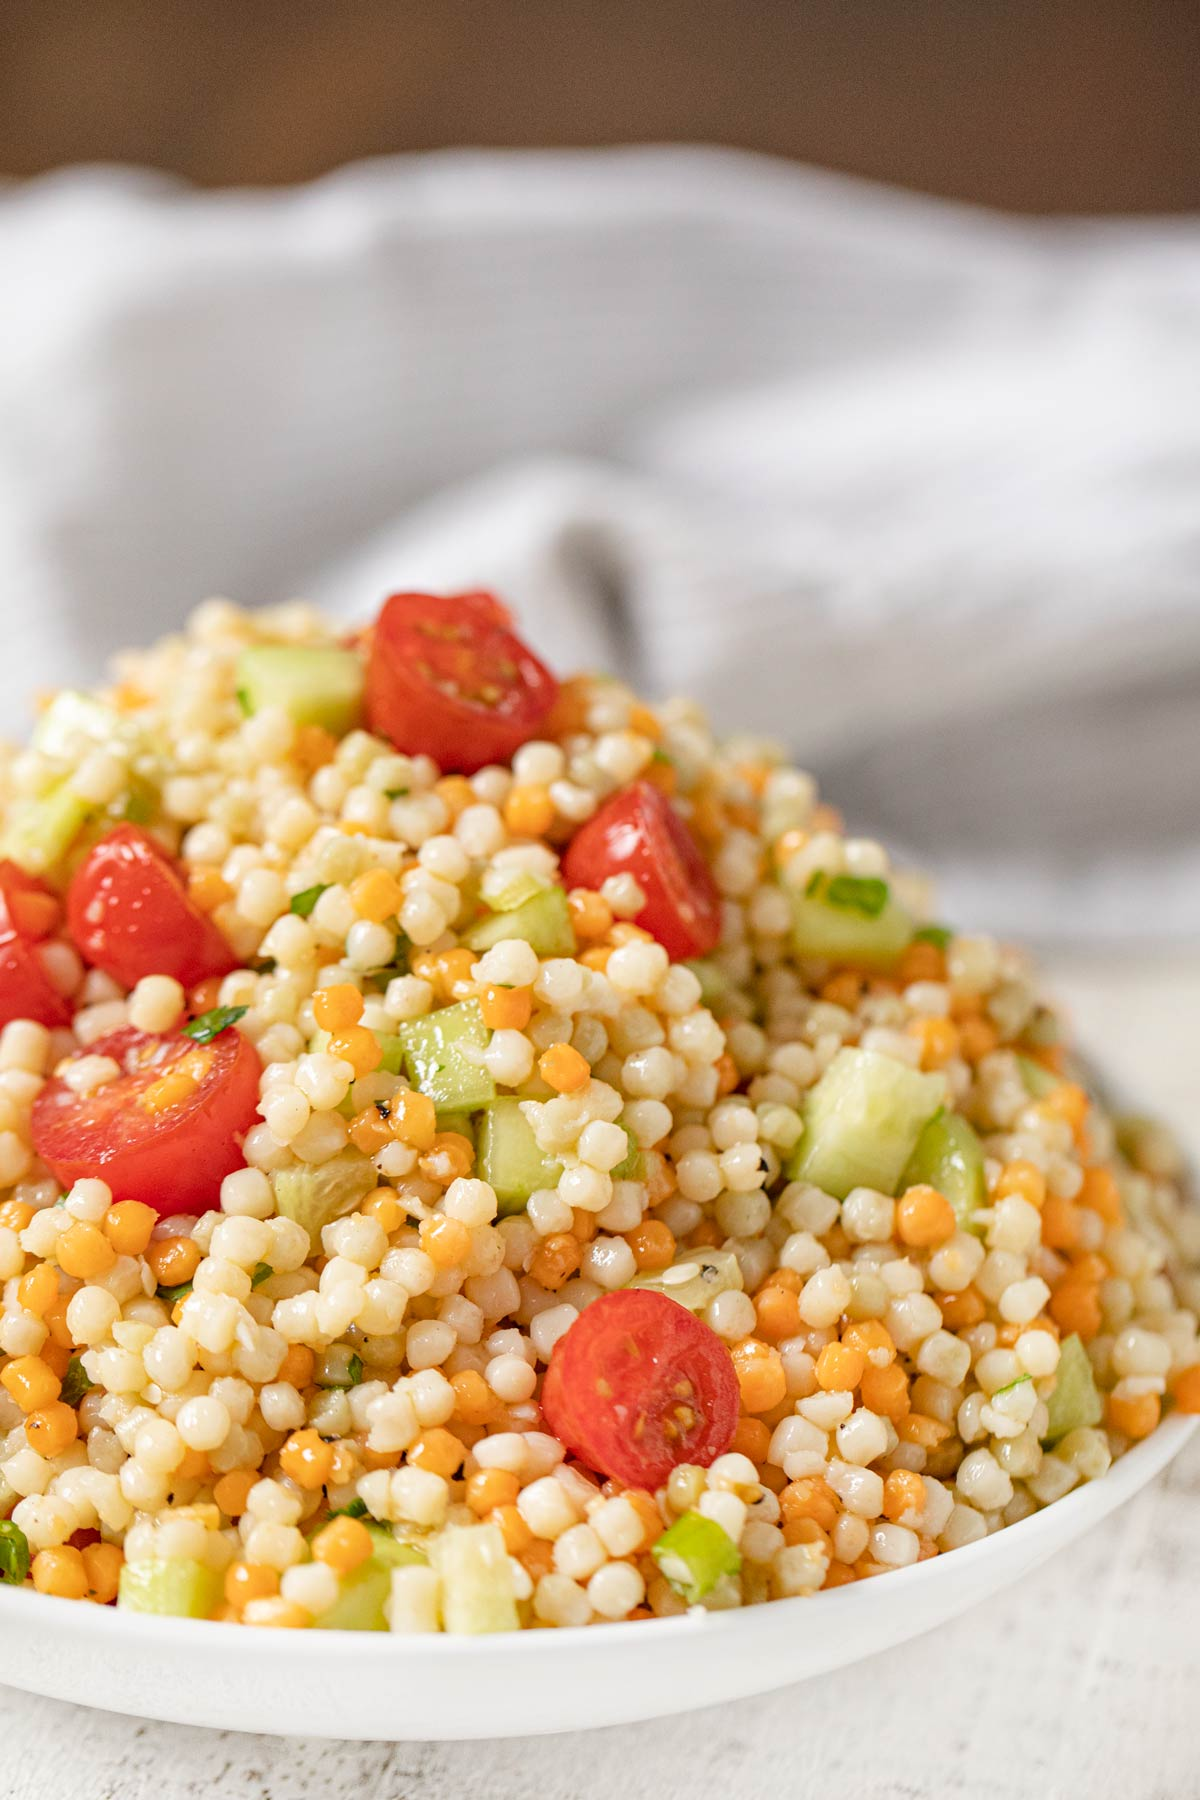 Couscous Salad with grape tomatoes